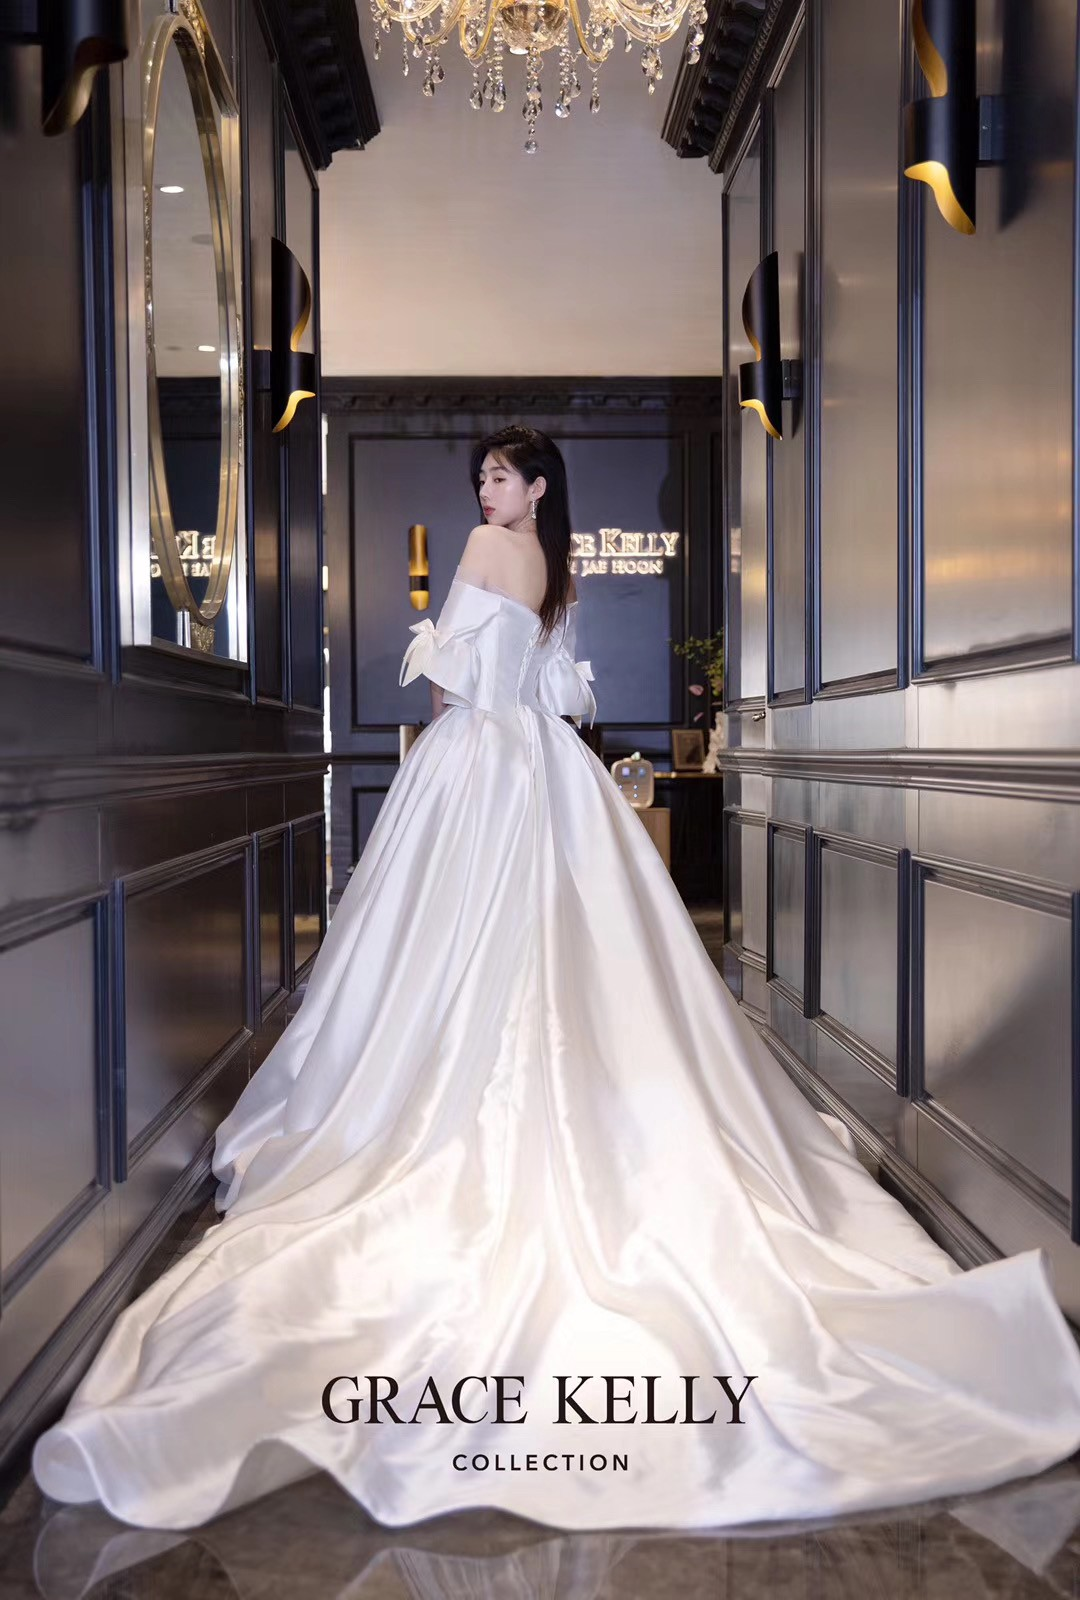 About Styles Of Wedding Dresses There Are Many Different Styles Of By Korea Artiz Studio Medium